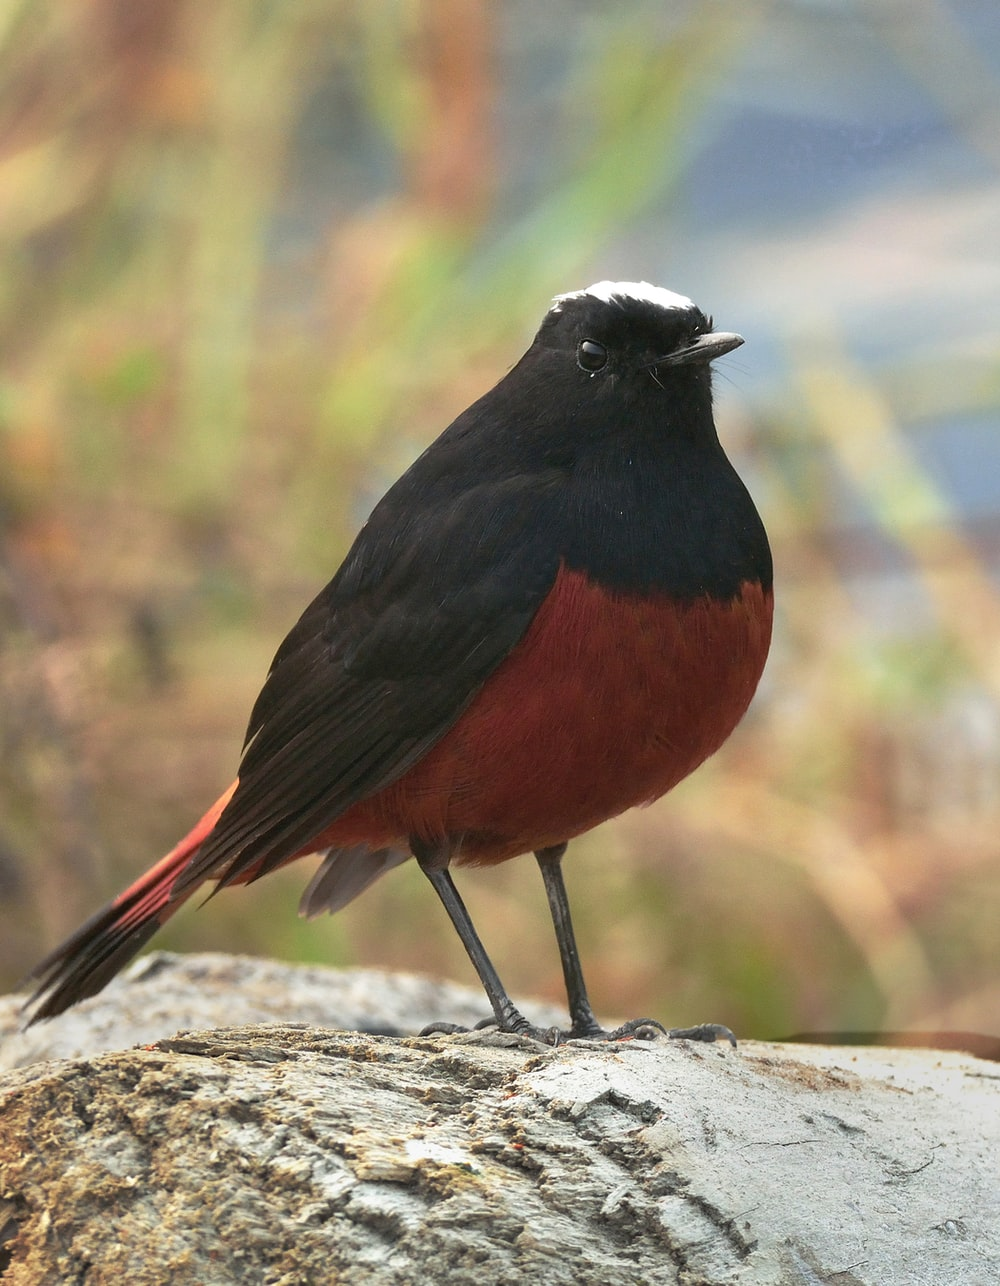 black and red bird on gray rock